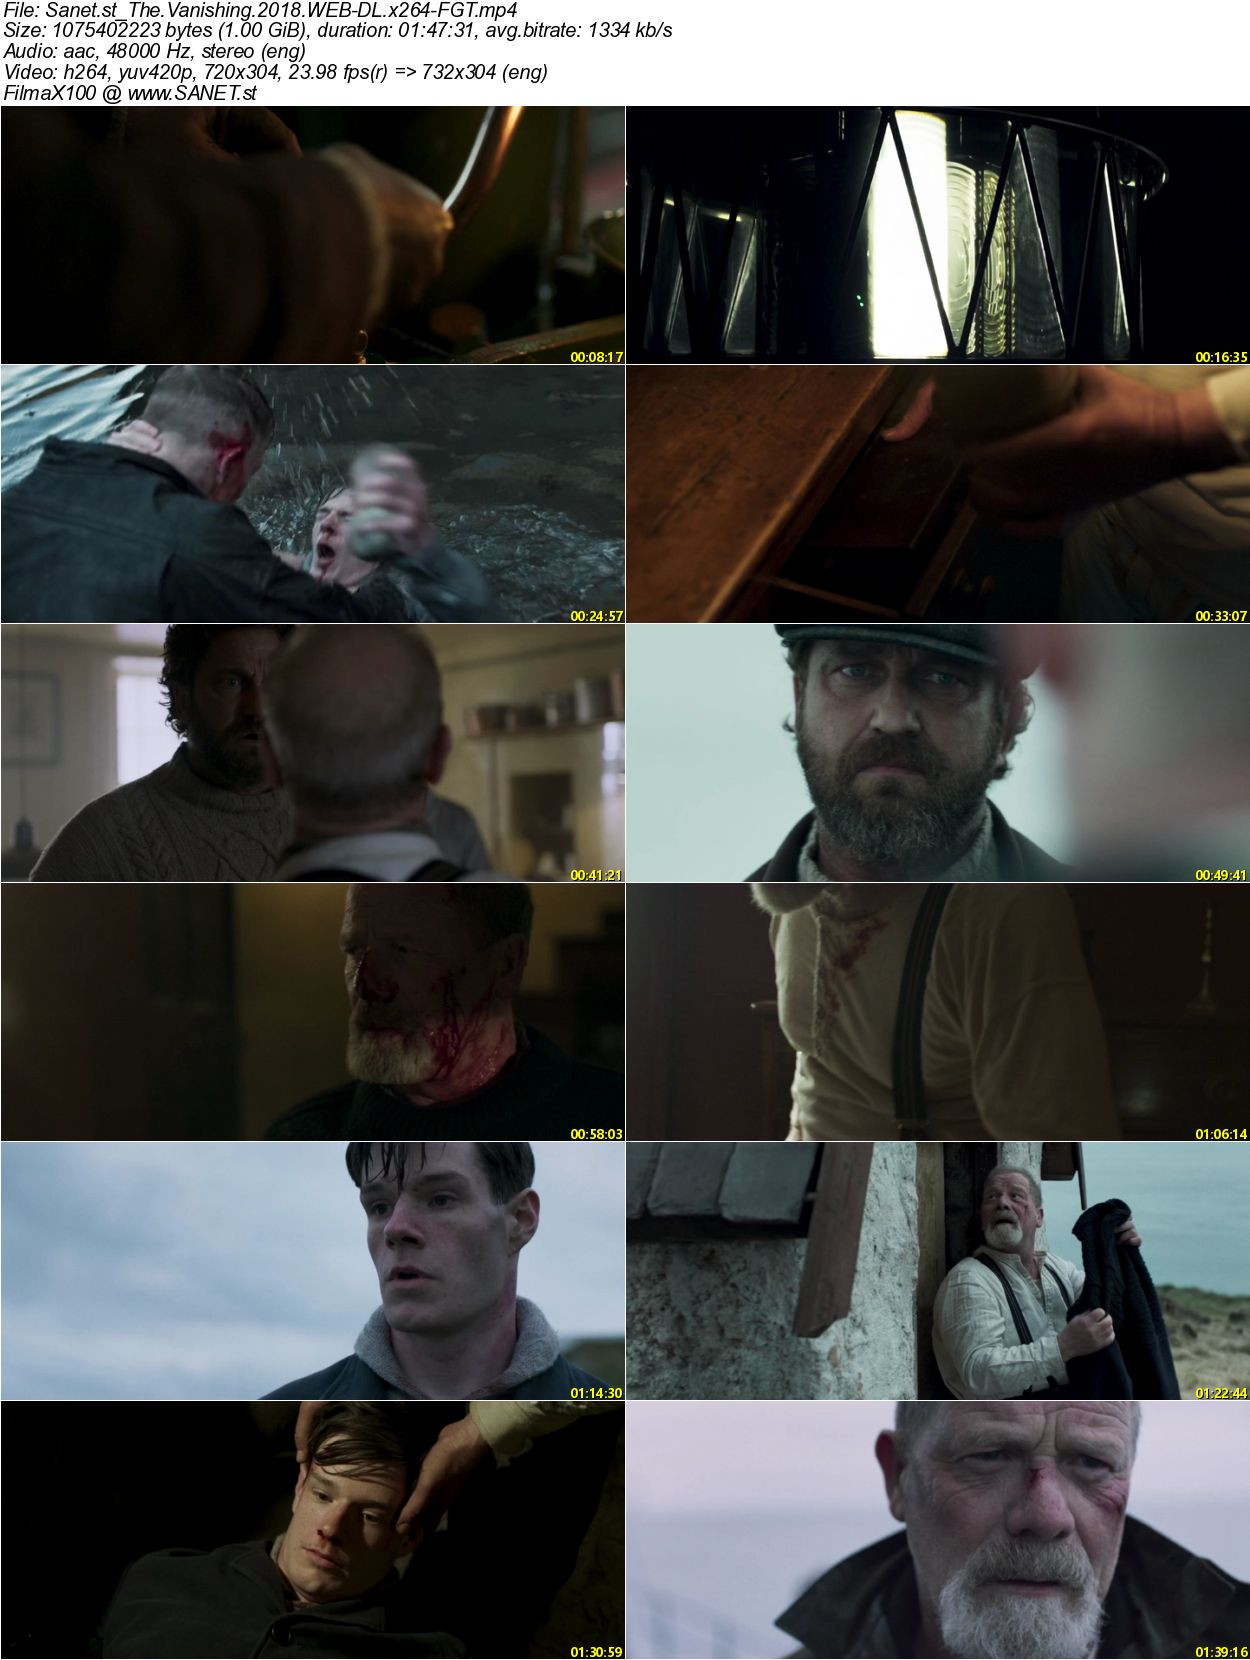 Download The Vanishing 2018 WEB-DL x264-FGT - SoftArchive